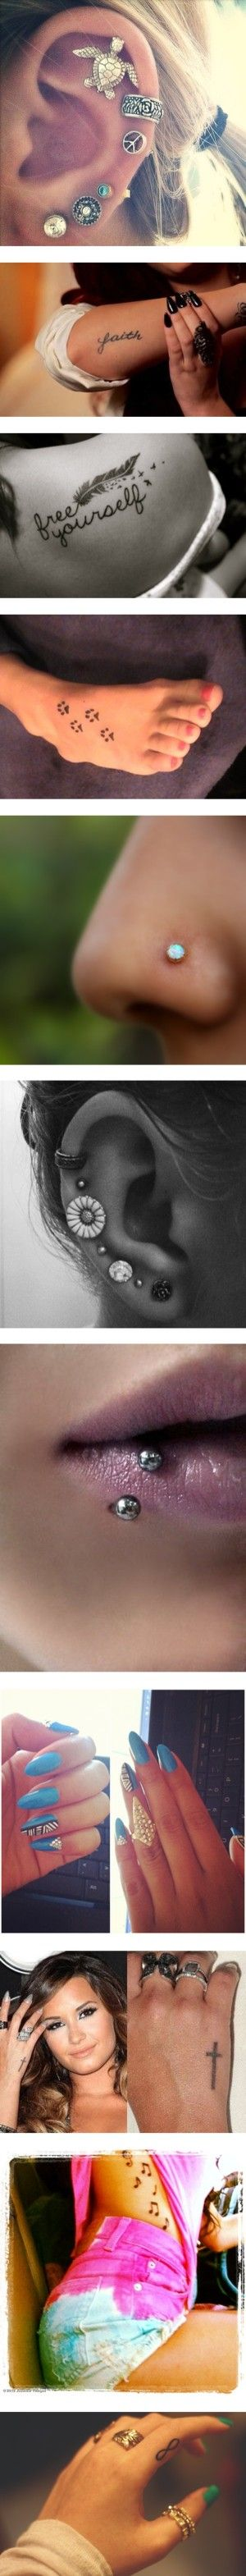 """Tattoos And Piercings That Are Nice"" by m-o-n-k-e-y ❤ liked on Polyvore"